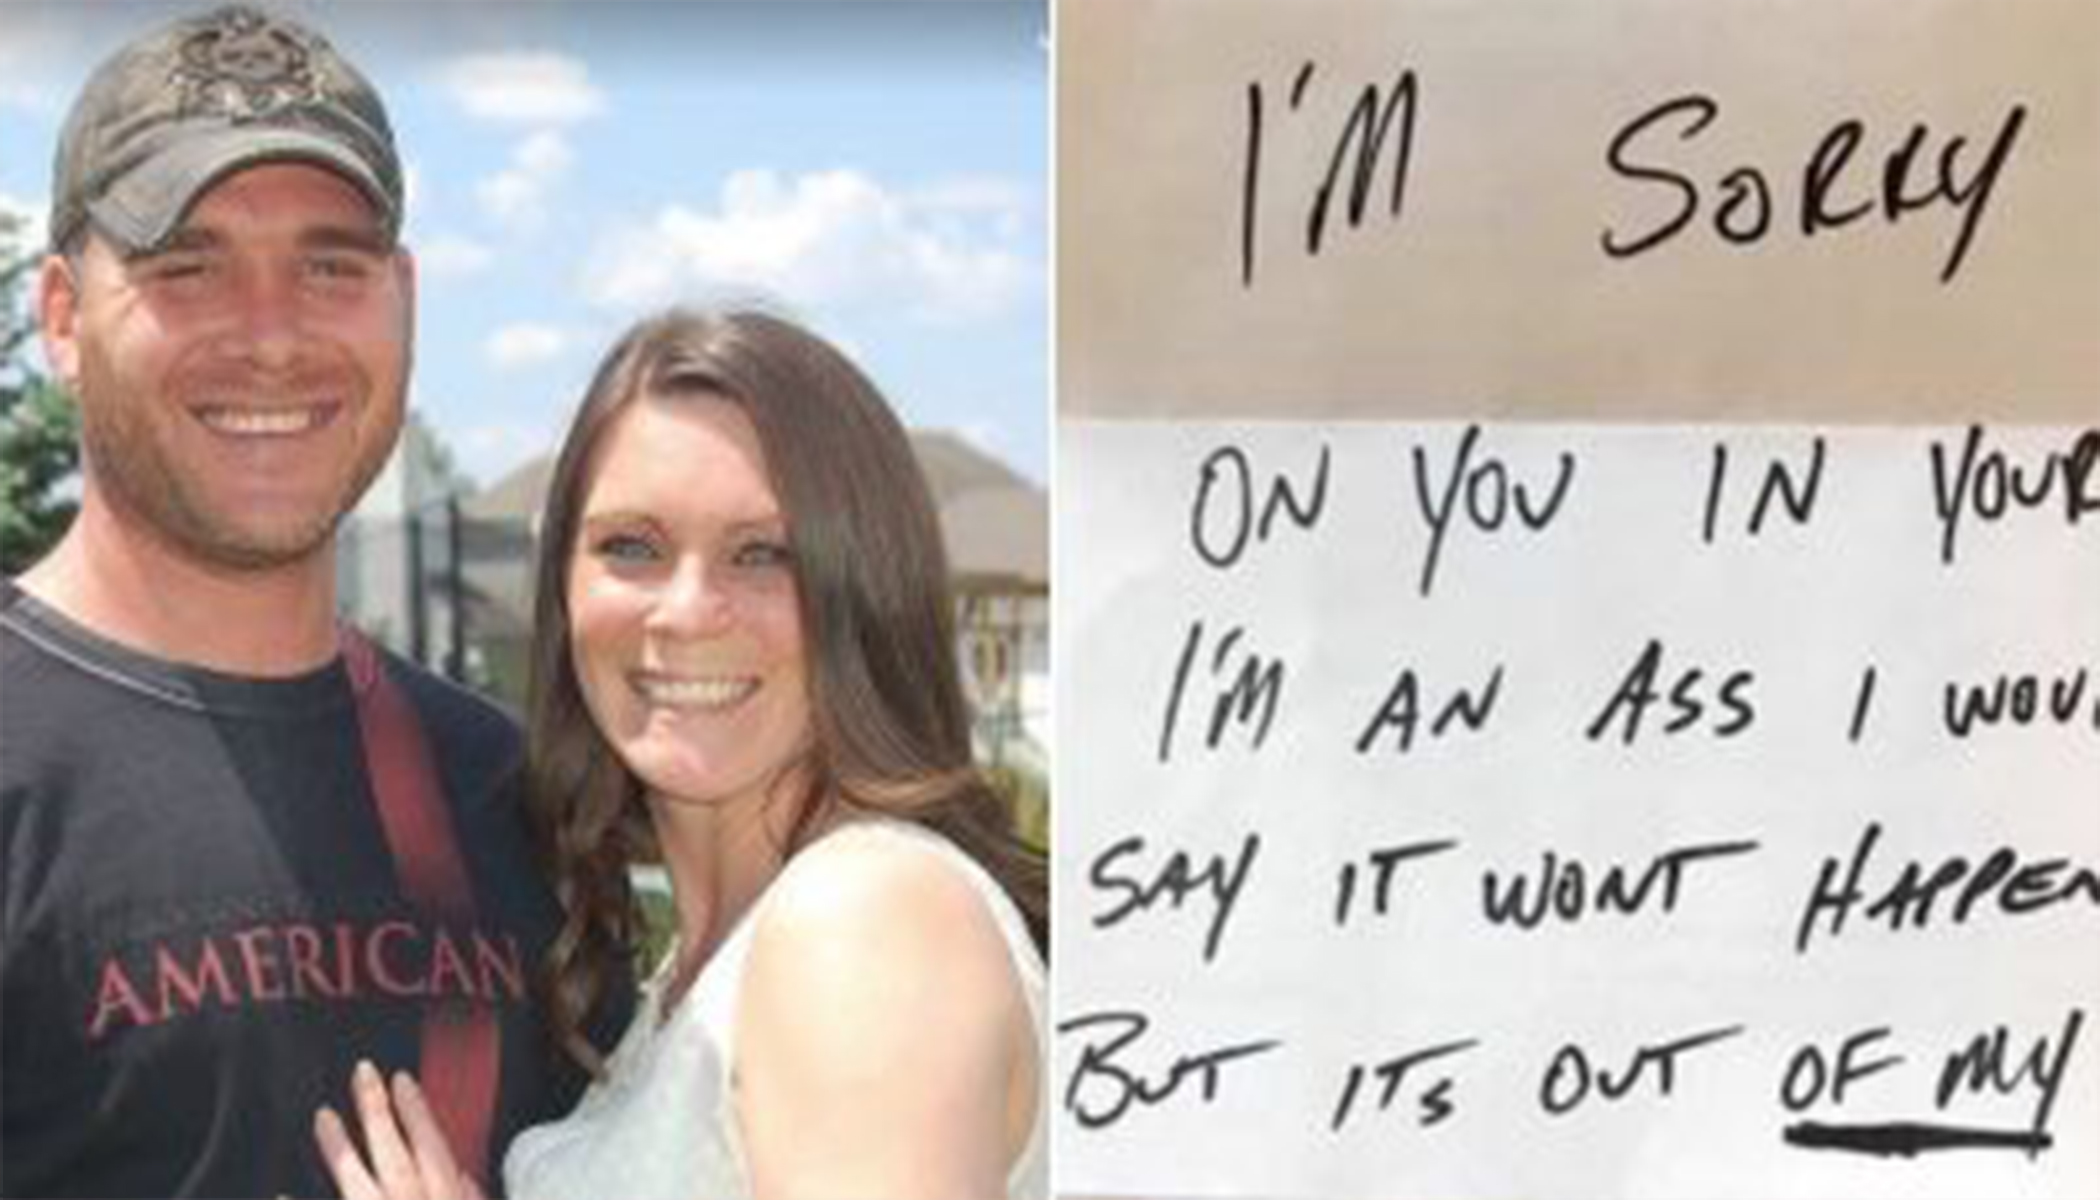 Husband Pens Funny Apology Note After Learning Wife's Sad About Him 'Cheating'